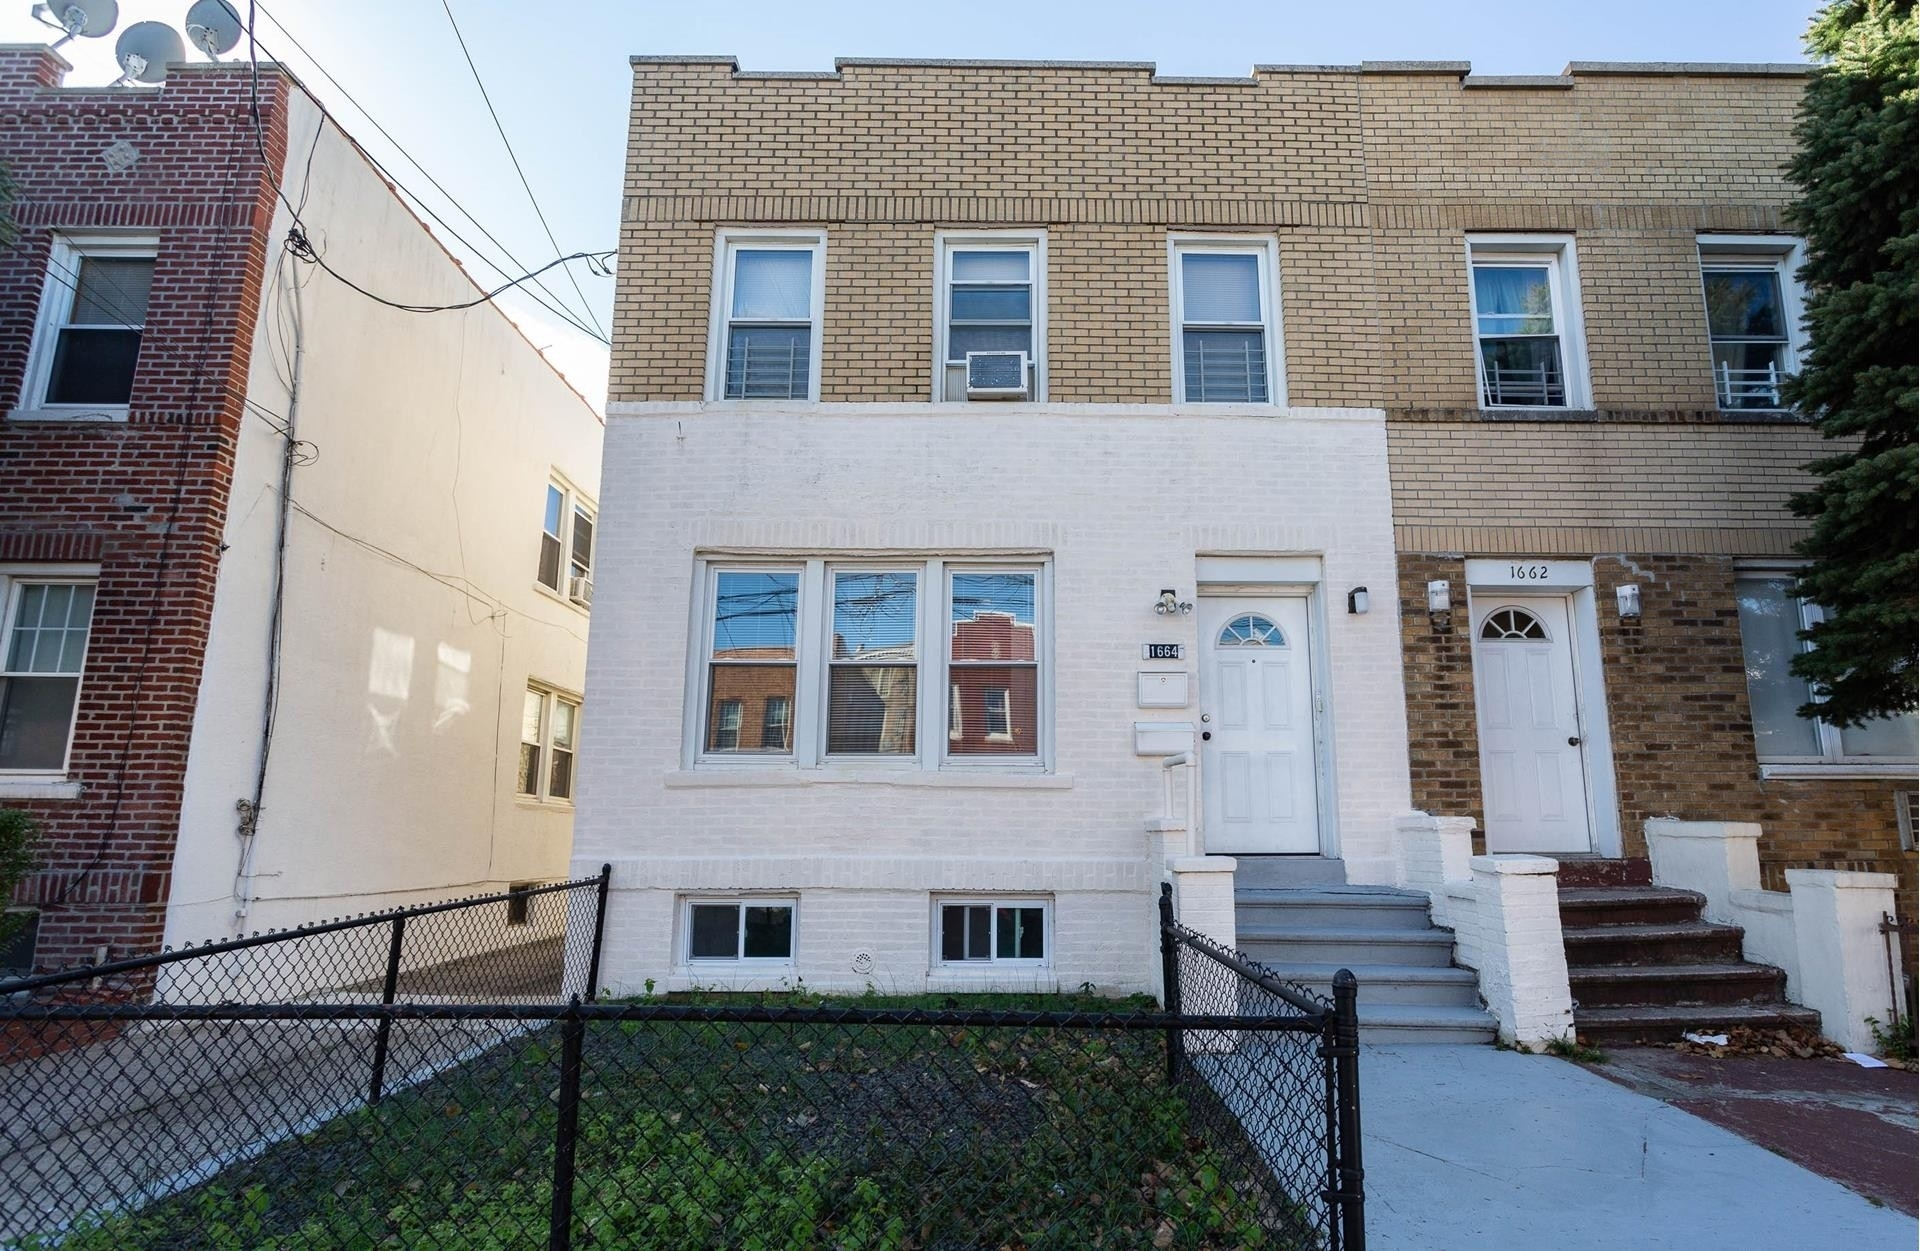 Multi Family Townhouse at Marine Park, Brooklyn, NY 11234